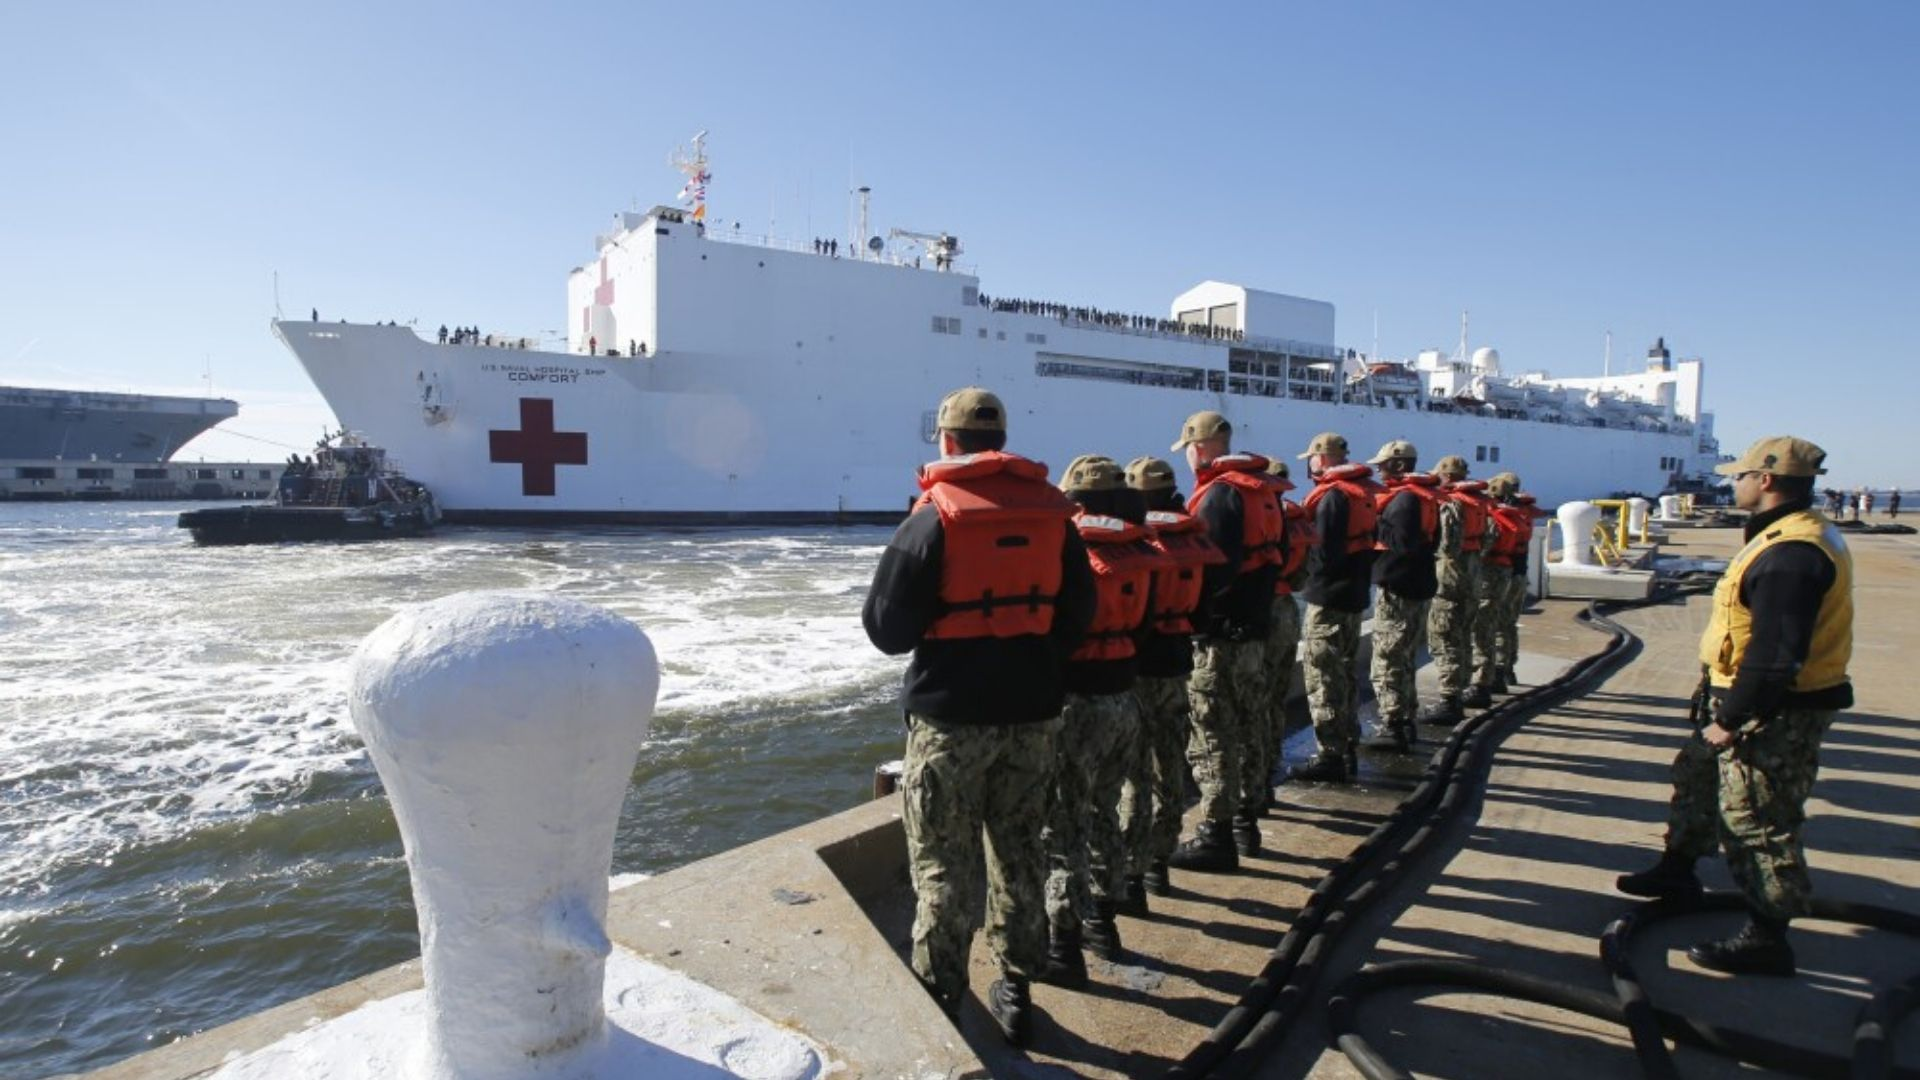 Hospital Ship Passes Statue of Liberty as It Arrives in New York